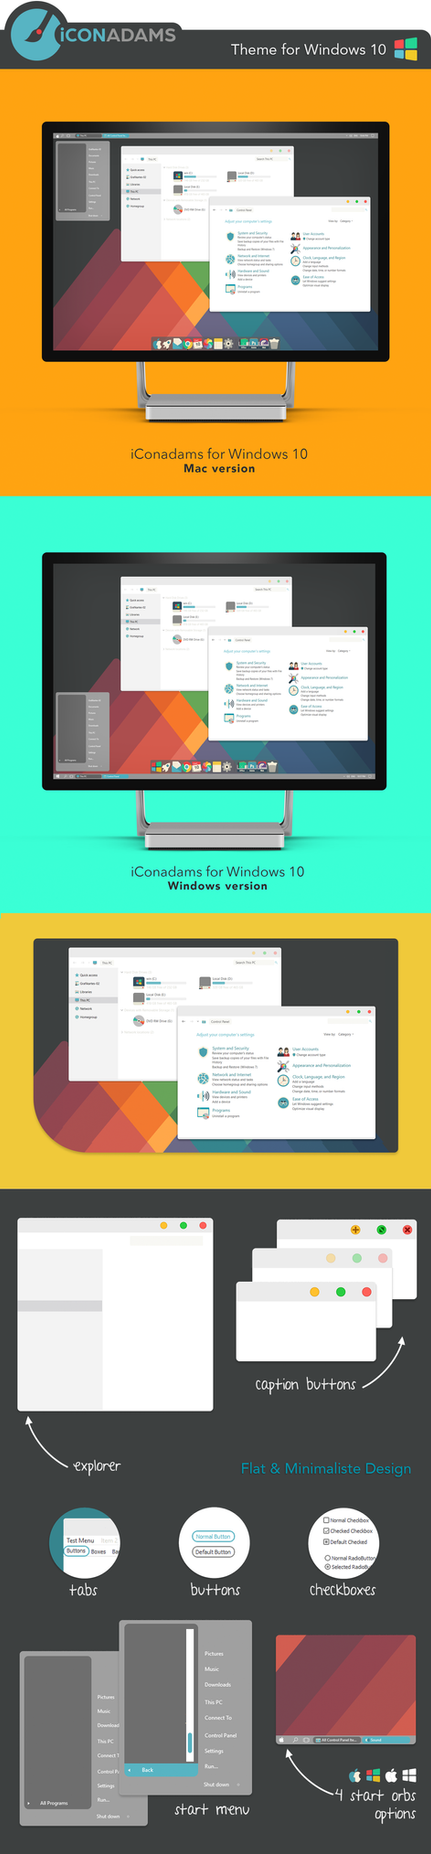 FREE iConadams Theme for Windows 10 by valvator